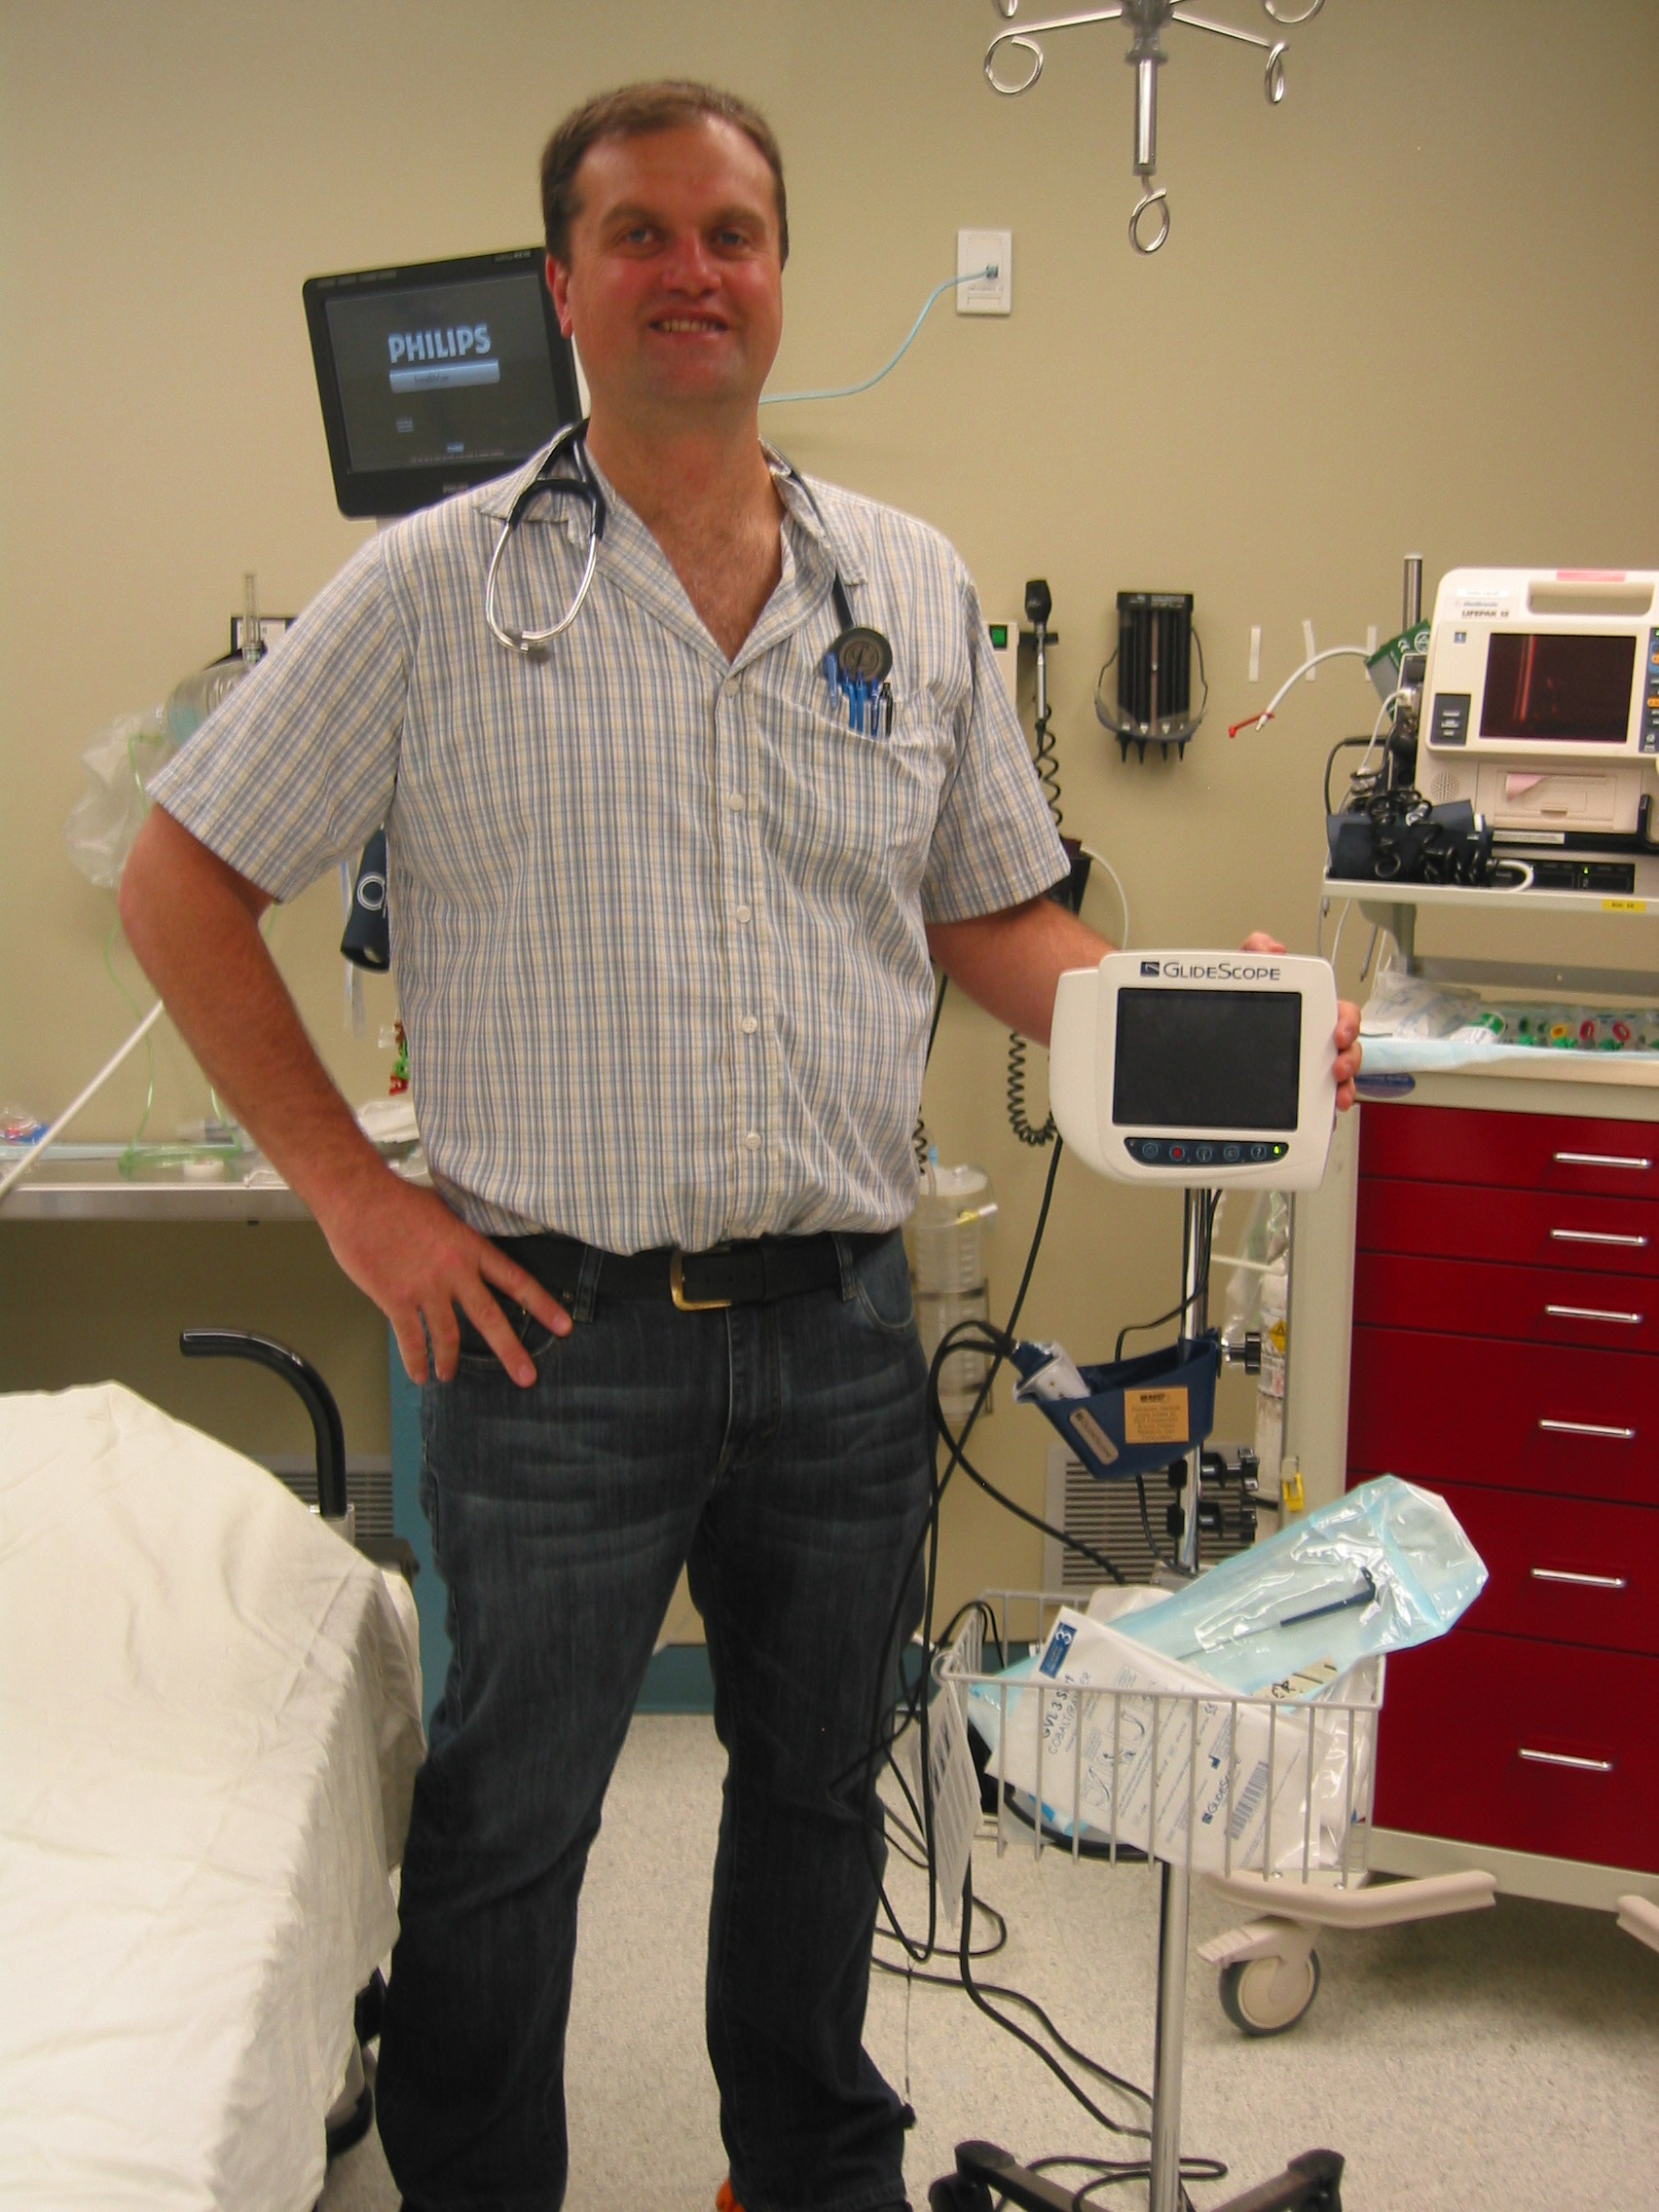 Dr. Engelbrecht, ER Physician, with the Glidescope Video Laryngoscope